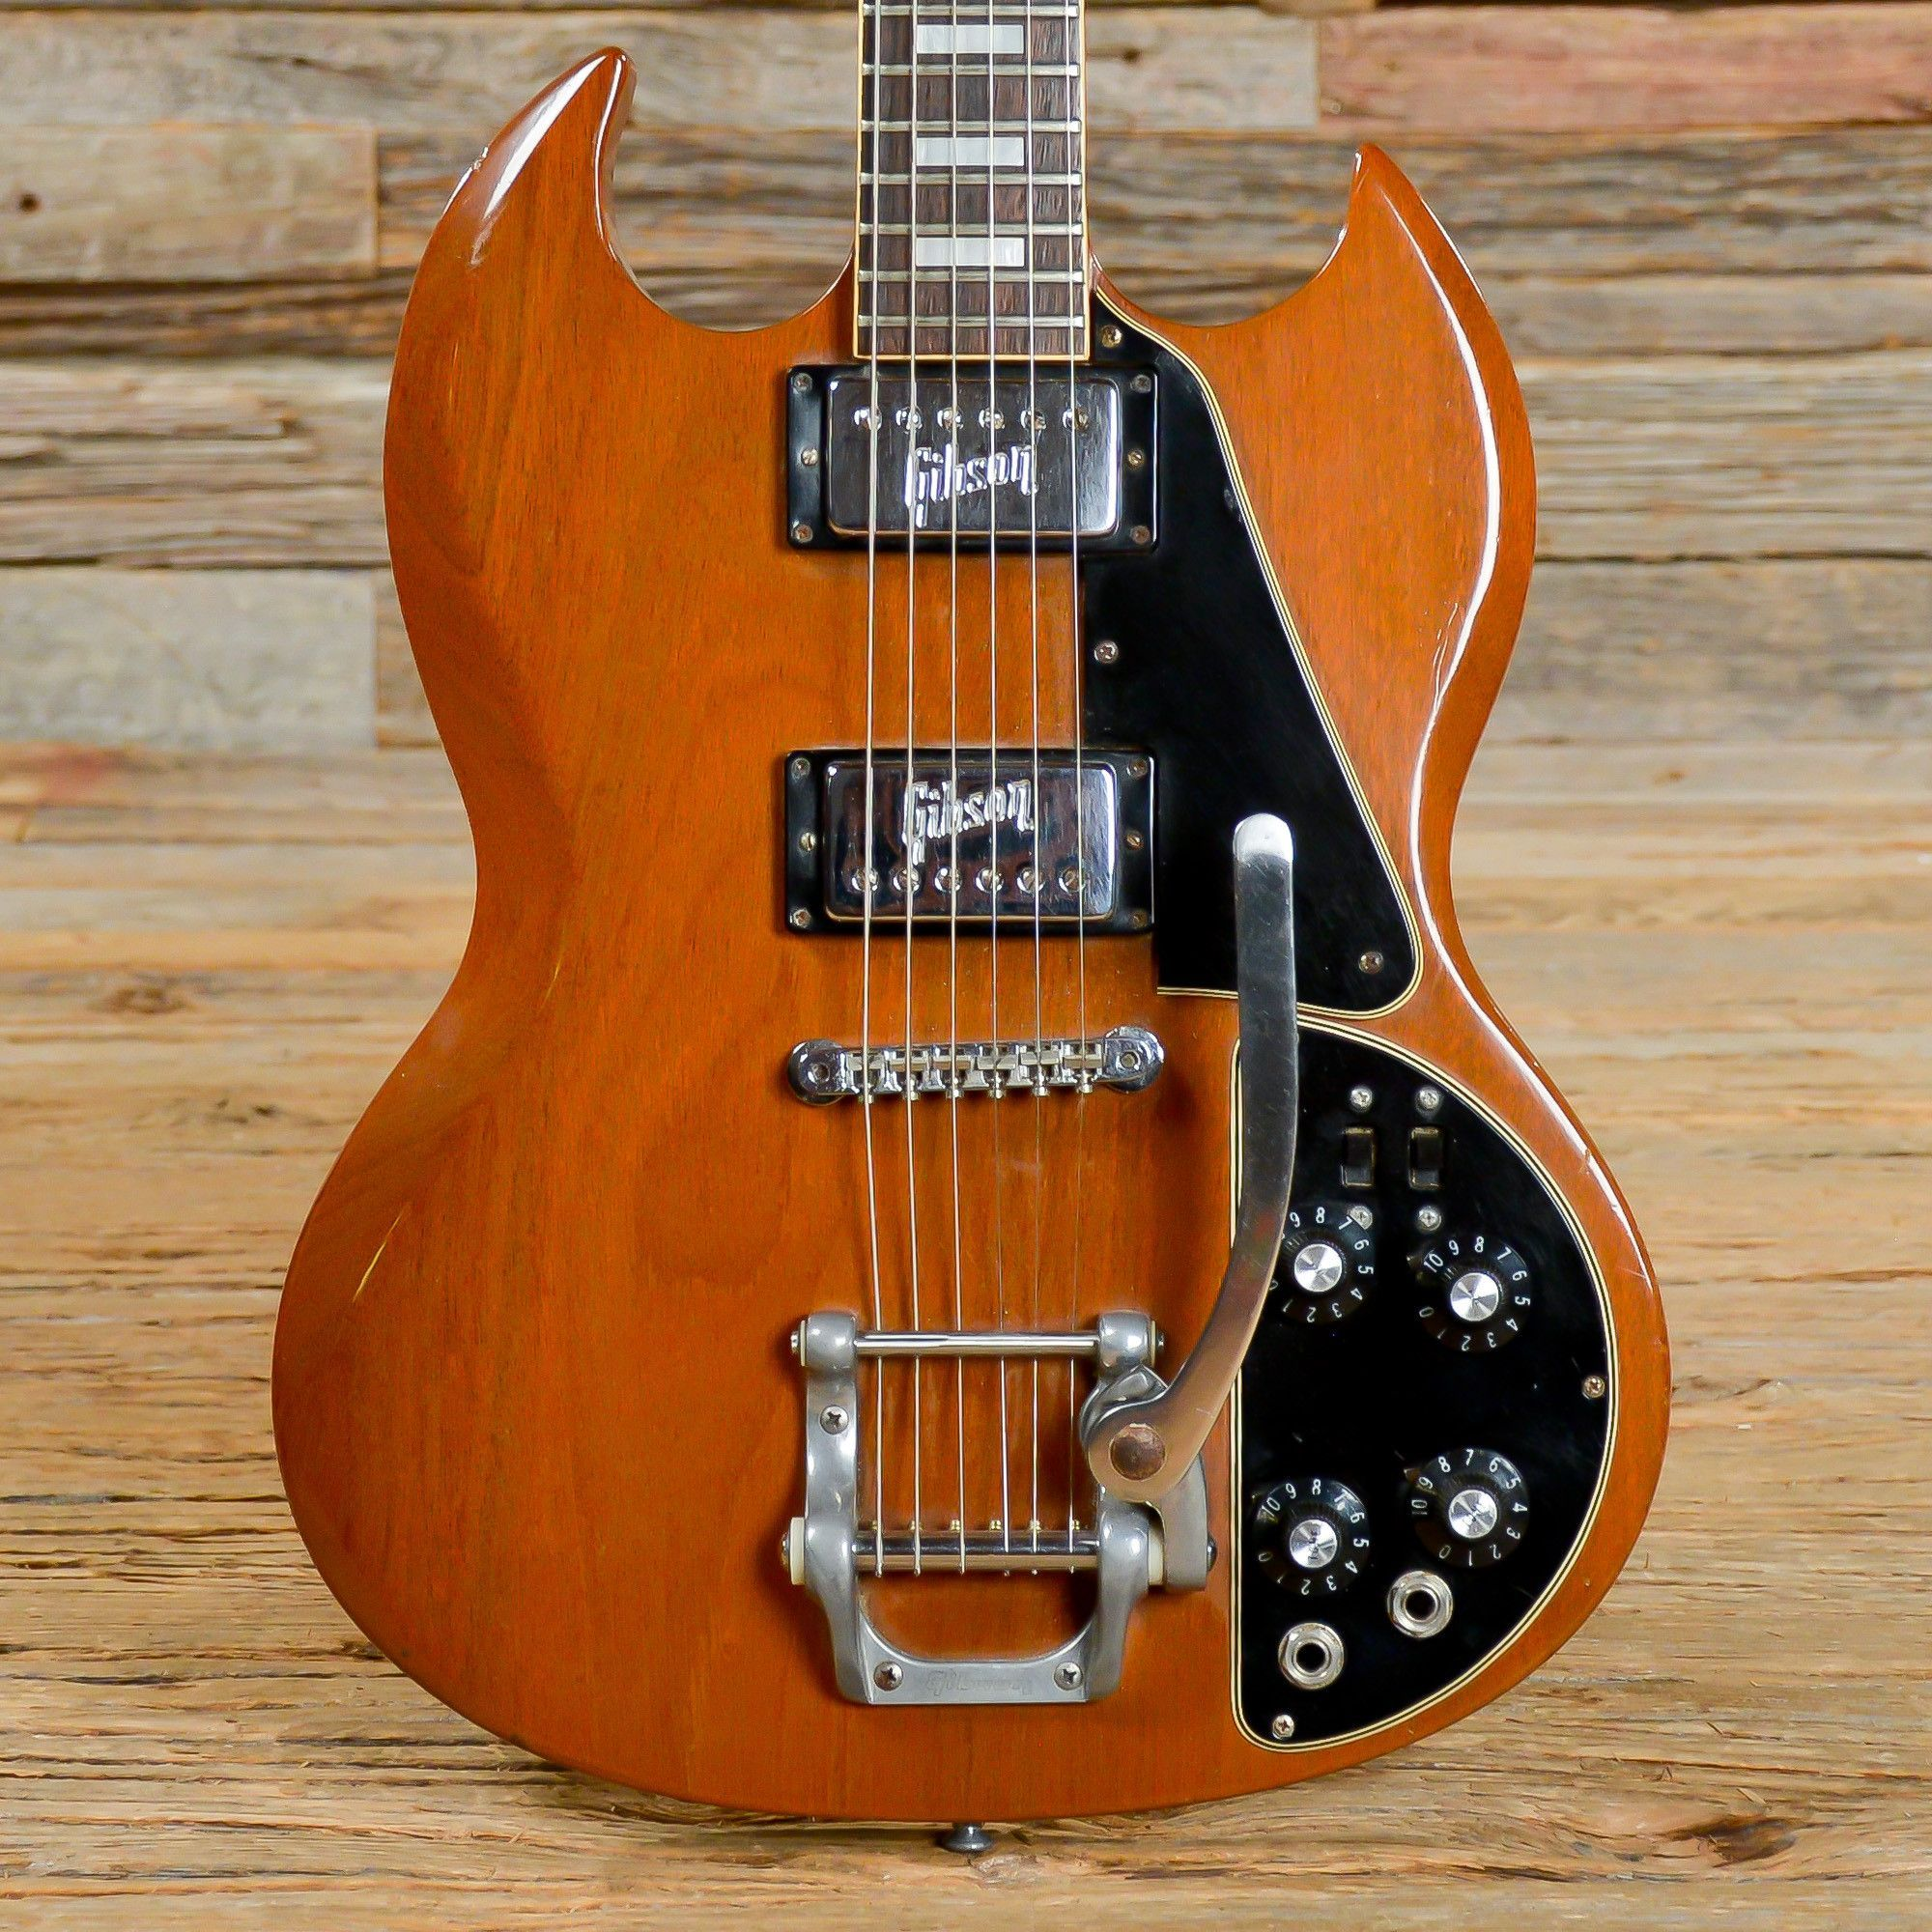 wiring diagram for epiphone g 400 with Gibson Sg Plans Let's Build on Tone Zone 047uf 109069 together with Wiring Diagram Electric Mandolin likewise Gibson SG Plans Let's Build as well 19909 Mod Garage 50s Les Paul Wiring In A Telecaster also Ed Sheeran Tattoos.